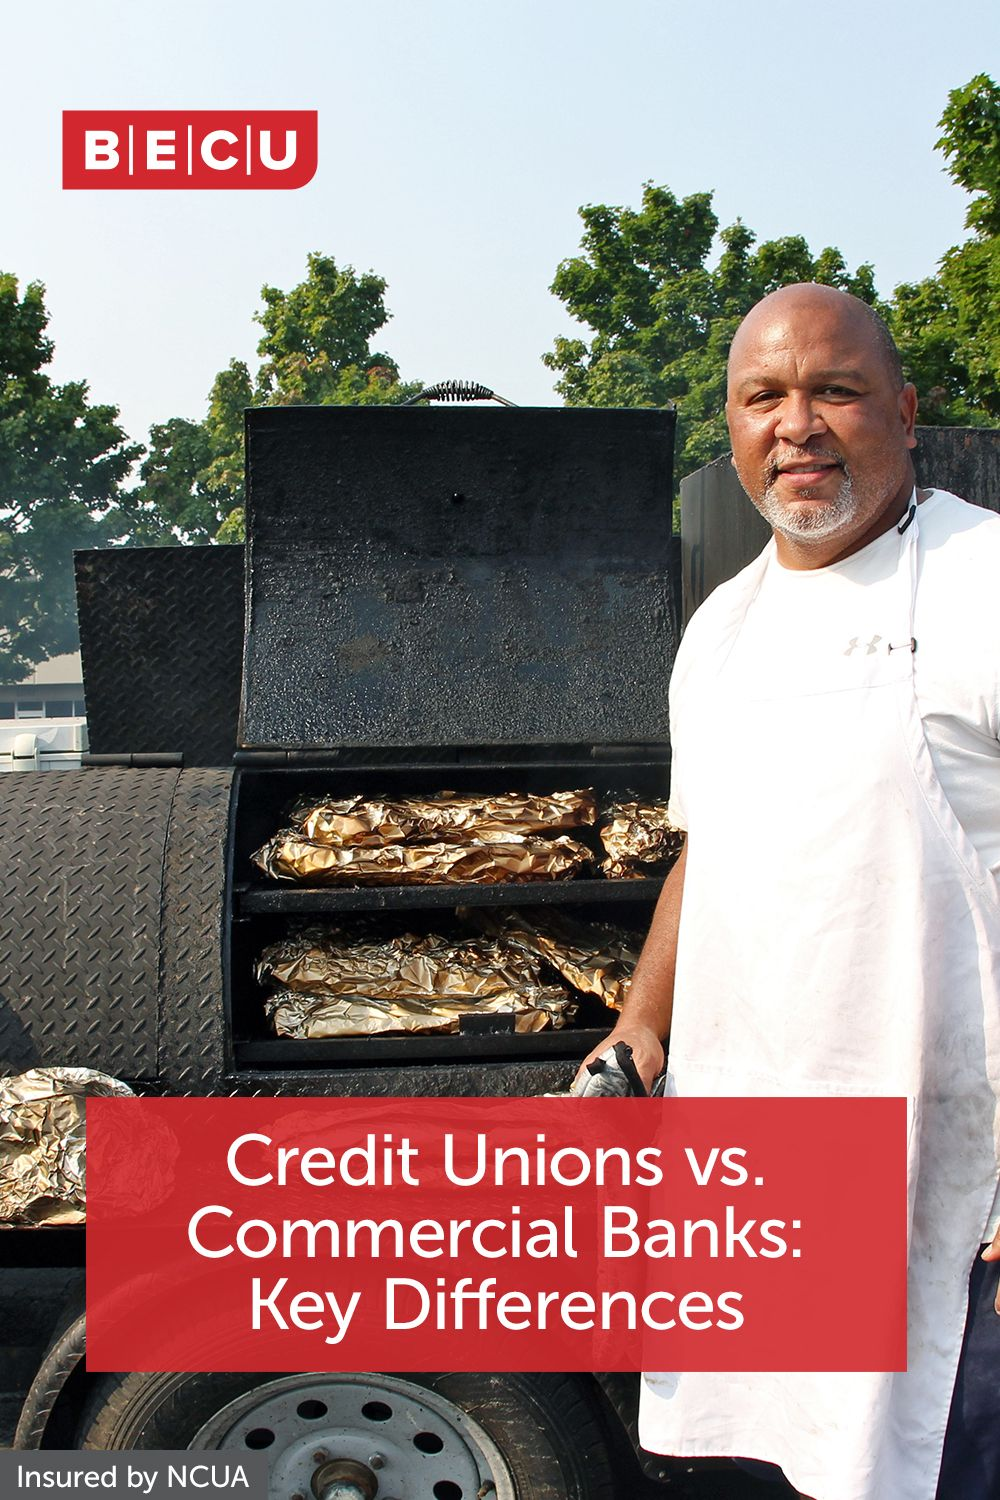 See 5 areas in which credit unions hold the advantage over